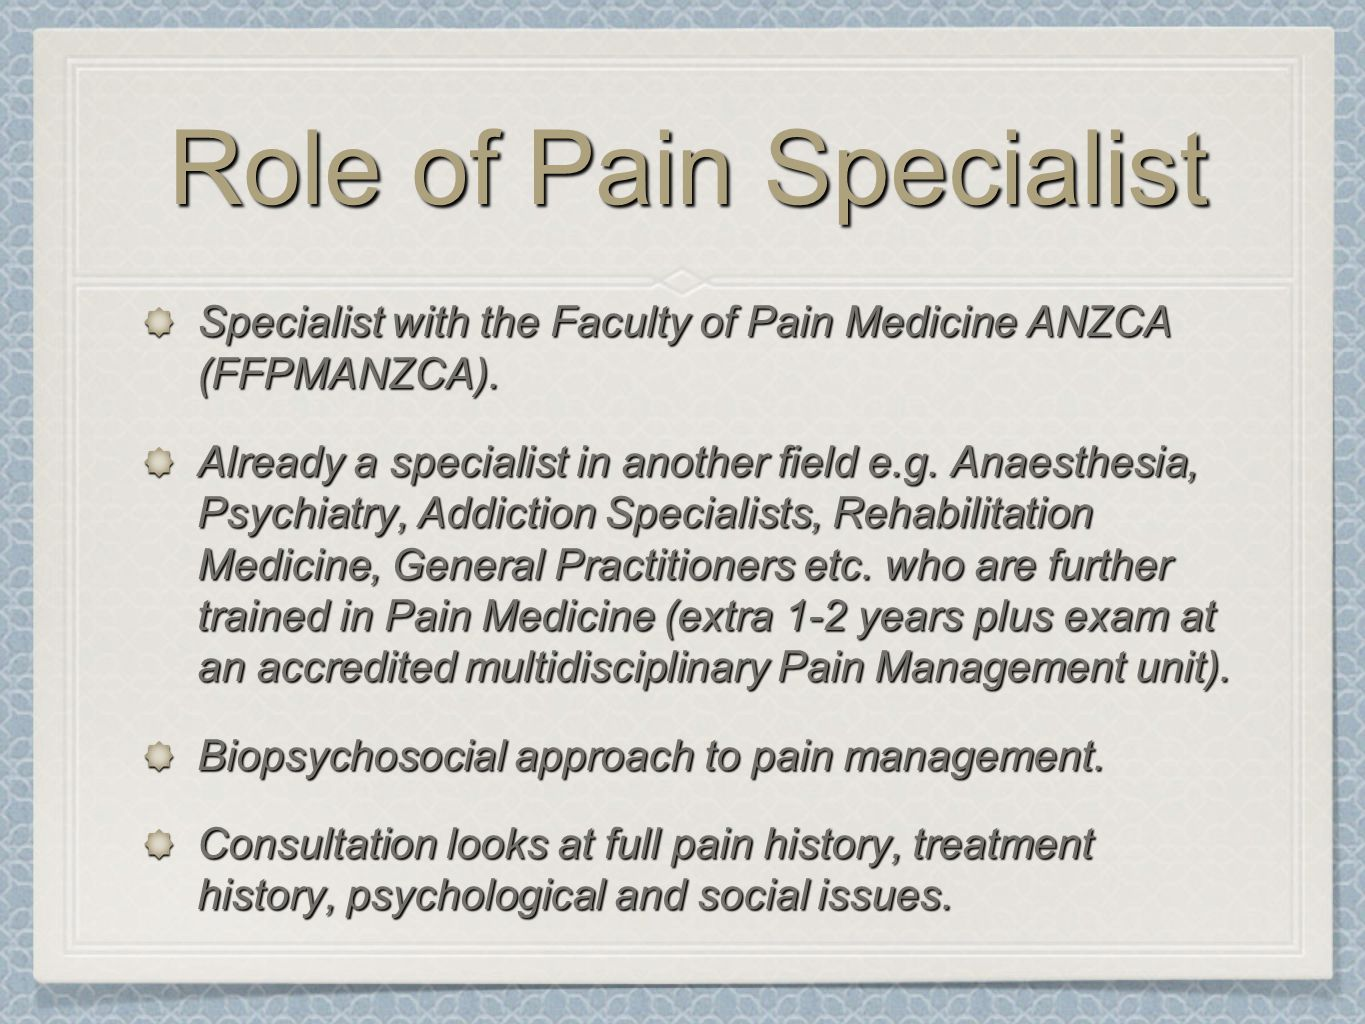 Role of Pain Specialist Specialist with the Faculty of Pain Medicine ANZCA (FFPMANZCA). Already a specialist in another field e.g. Anaesthesia, Psychi